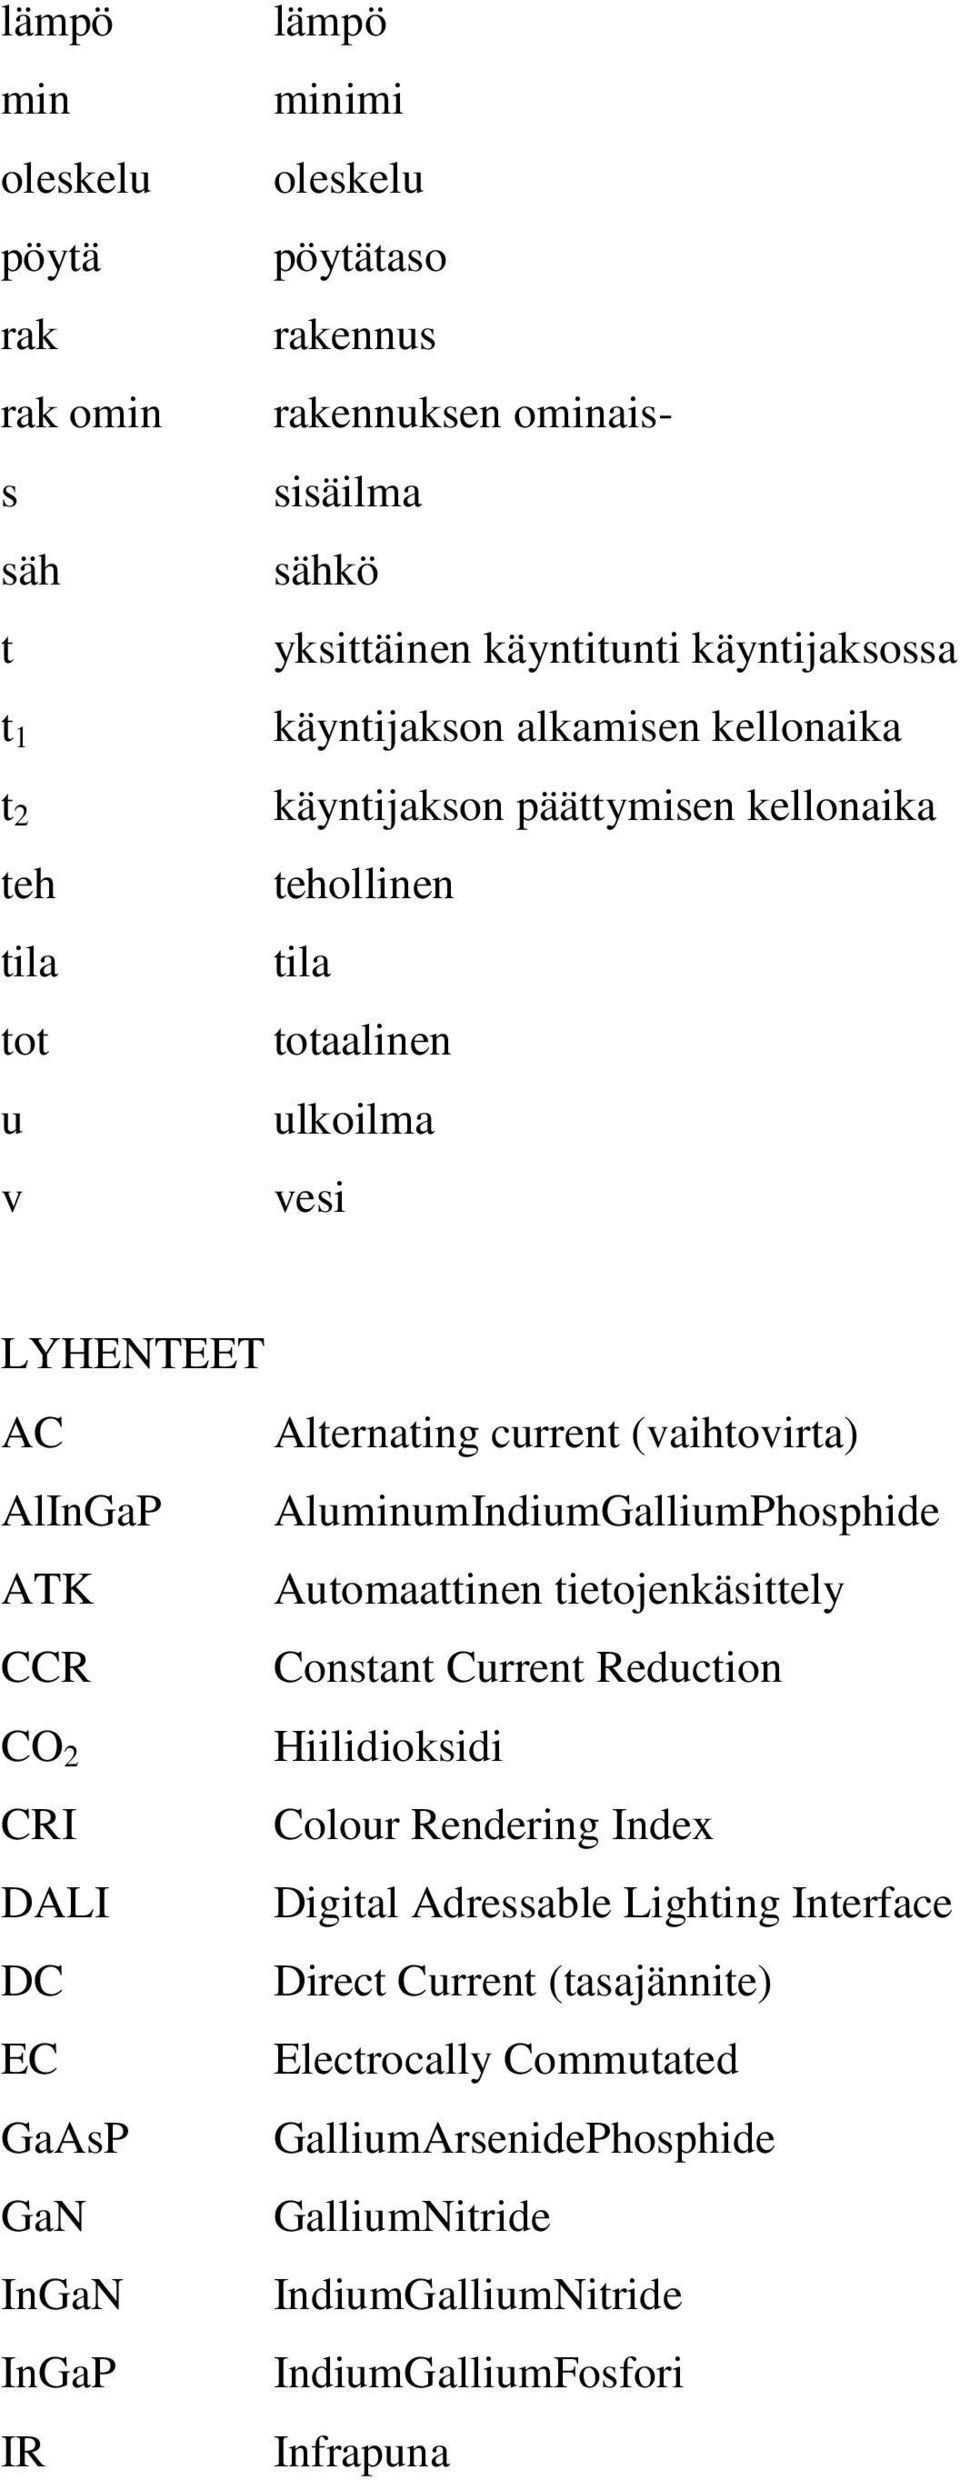 AlInGaP AluminumIndiumGalliumPhosphide ATK Automaattinen tietojenkäsittely CCR Constant Current Reduction CO 2 Hiilidioksidi CRI Colour Rendering Index DALI Digital Adressable